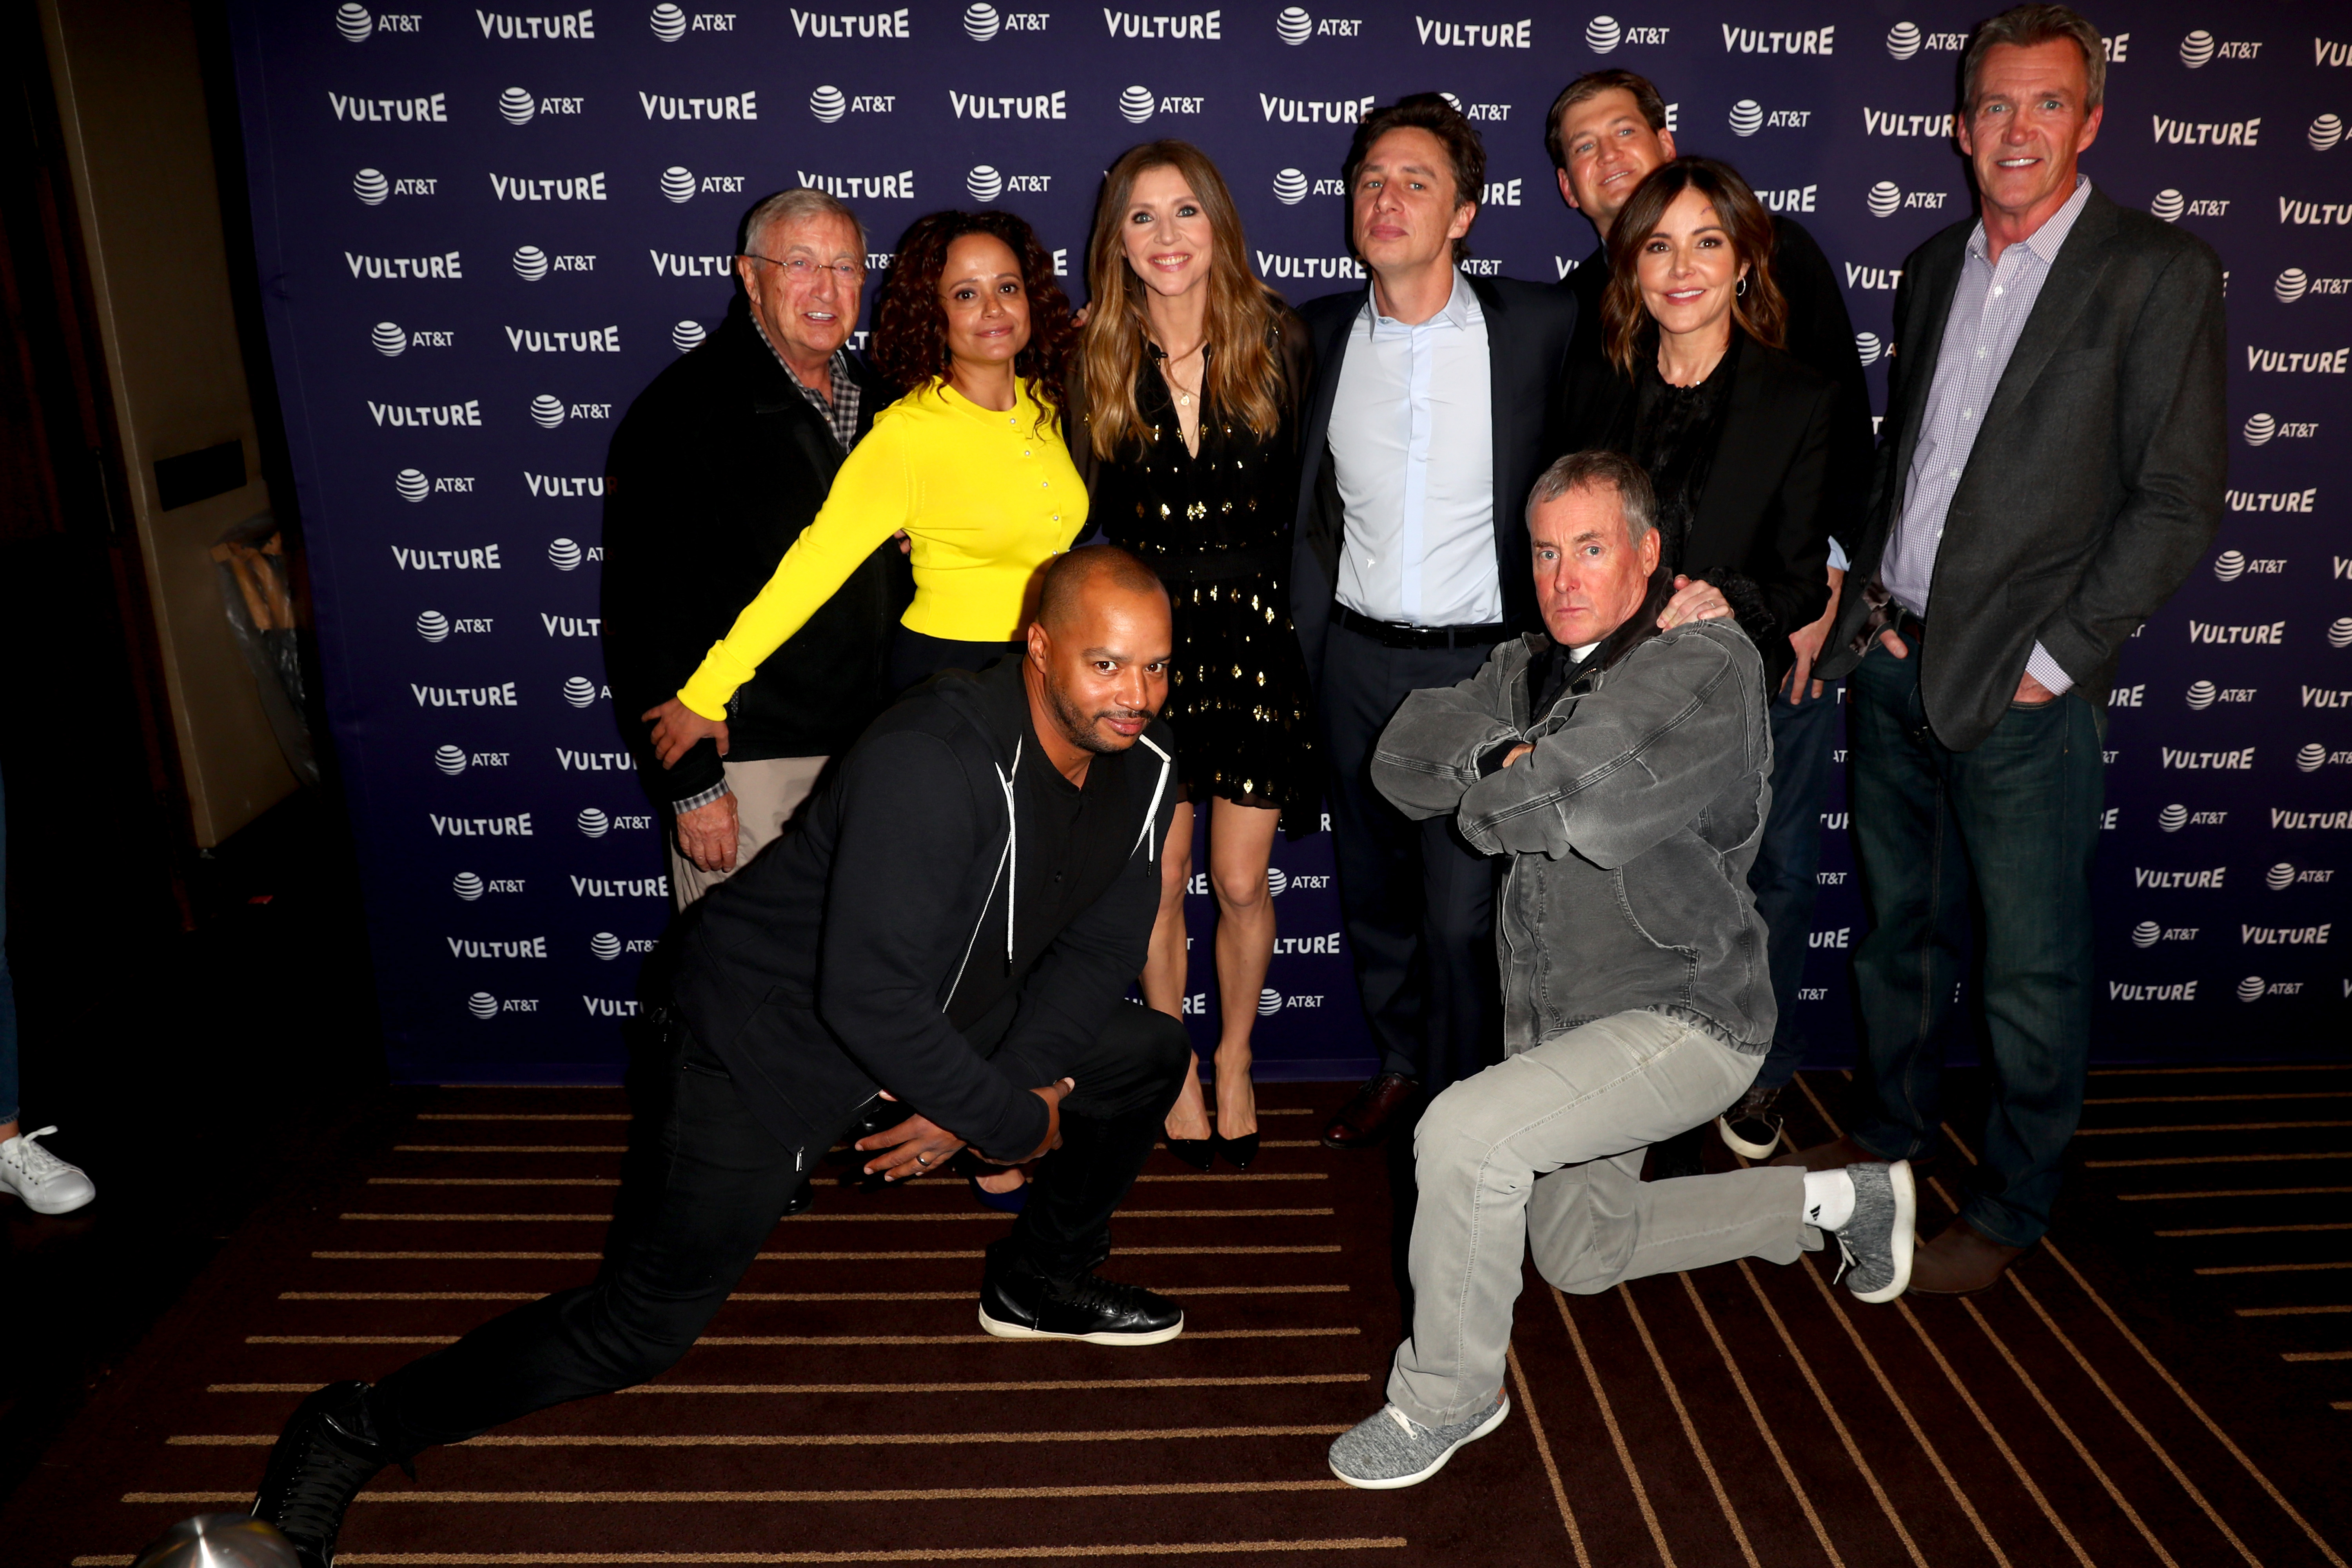 Ken Jenkins, Judy Reyes, Sarah Chalke, Zach Braff, Bill Lawrence, Christa Miller, Neil Flynn, Donald Faison and John C. McGinley attend 'Scrubs Reunion' during Vulture Festival presented by AT&T at Hollywood Roosevelt Hotel on November 17, 2018 in Hollywood, California. (Photo by Joe Scarnici/Getty Images for New York Magazine)